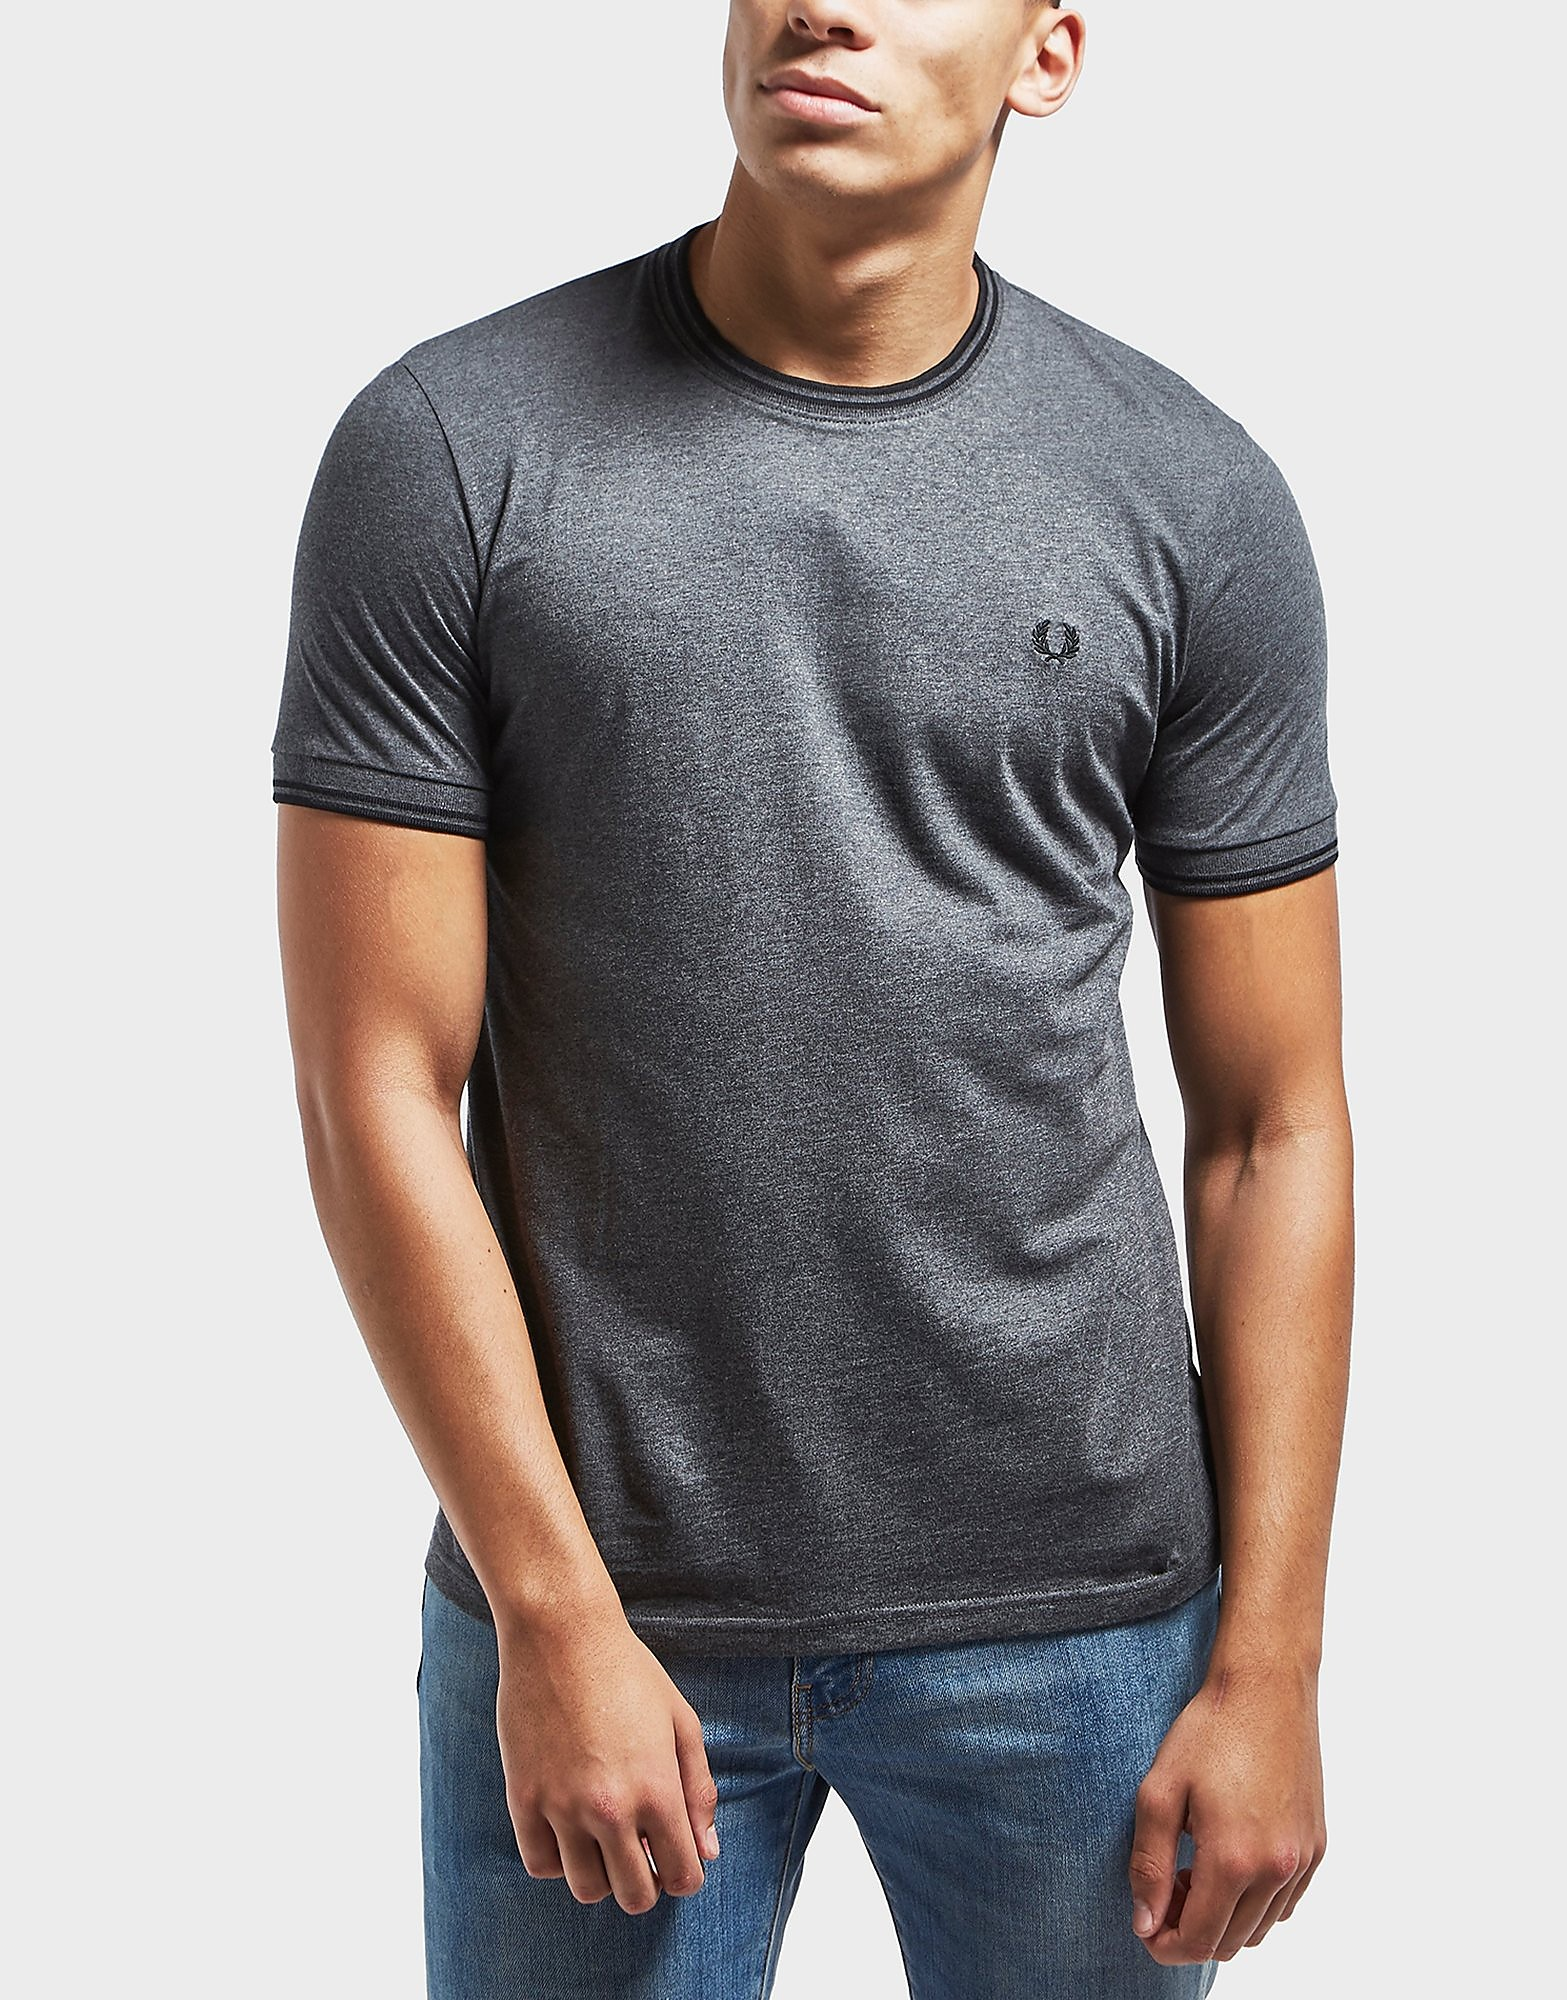 Fred Perry Tipped Ringer Short Sleeve T-Shirt